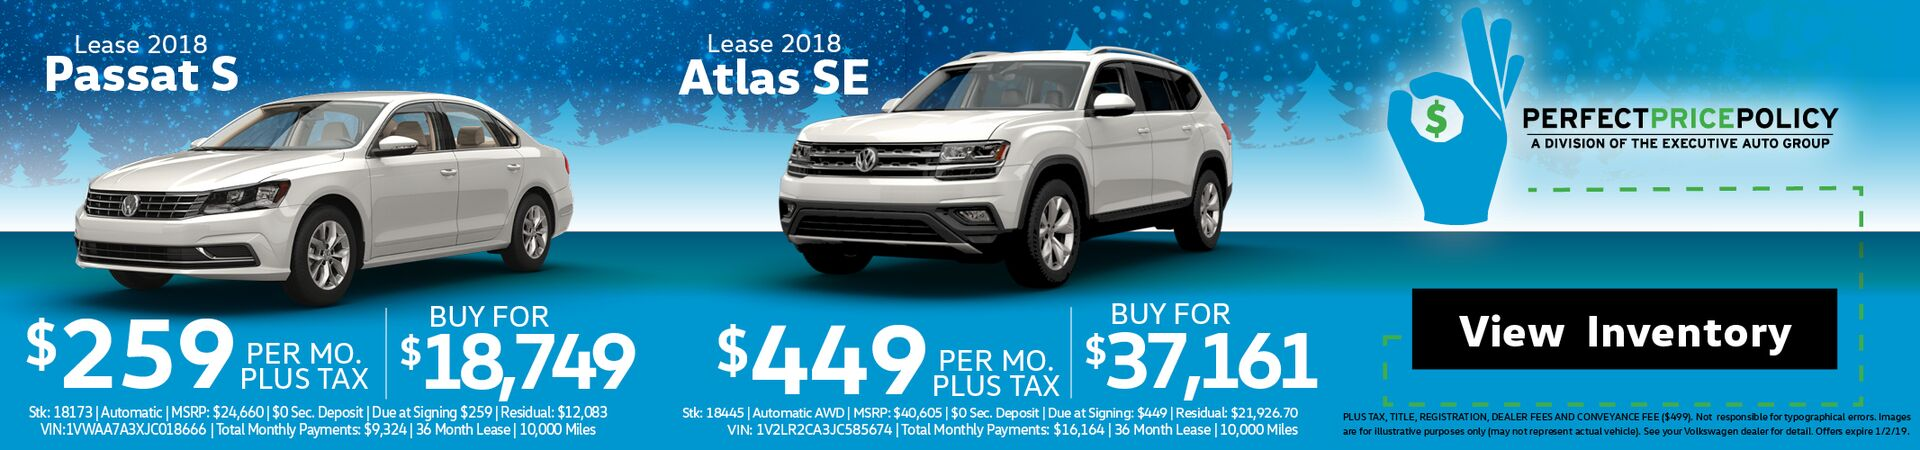 Passat Atlas lease Dec2018